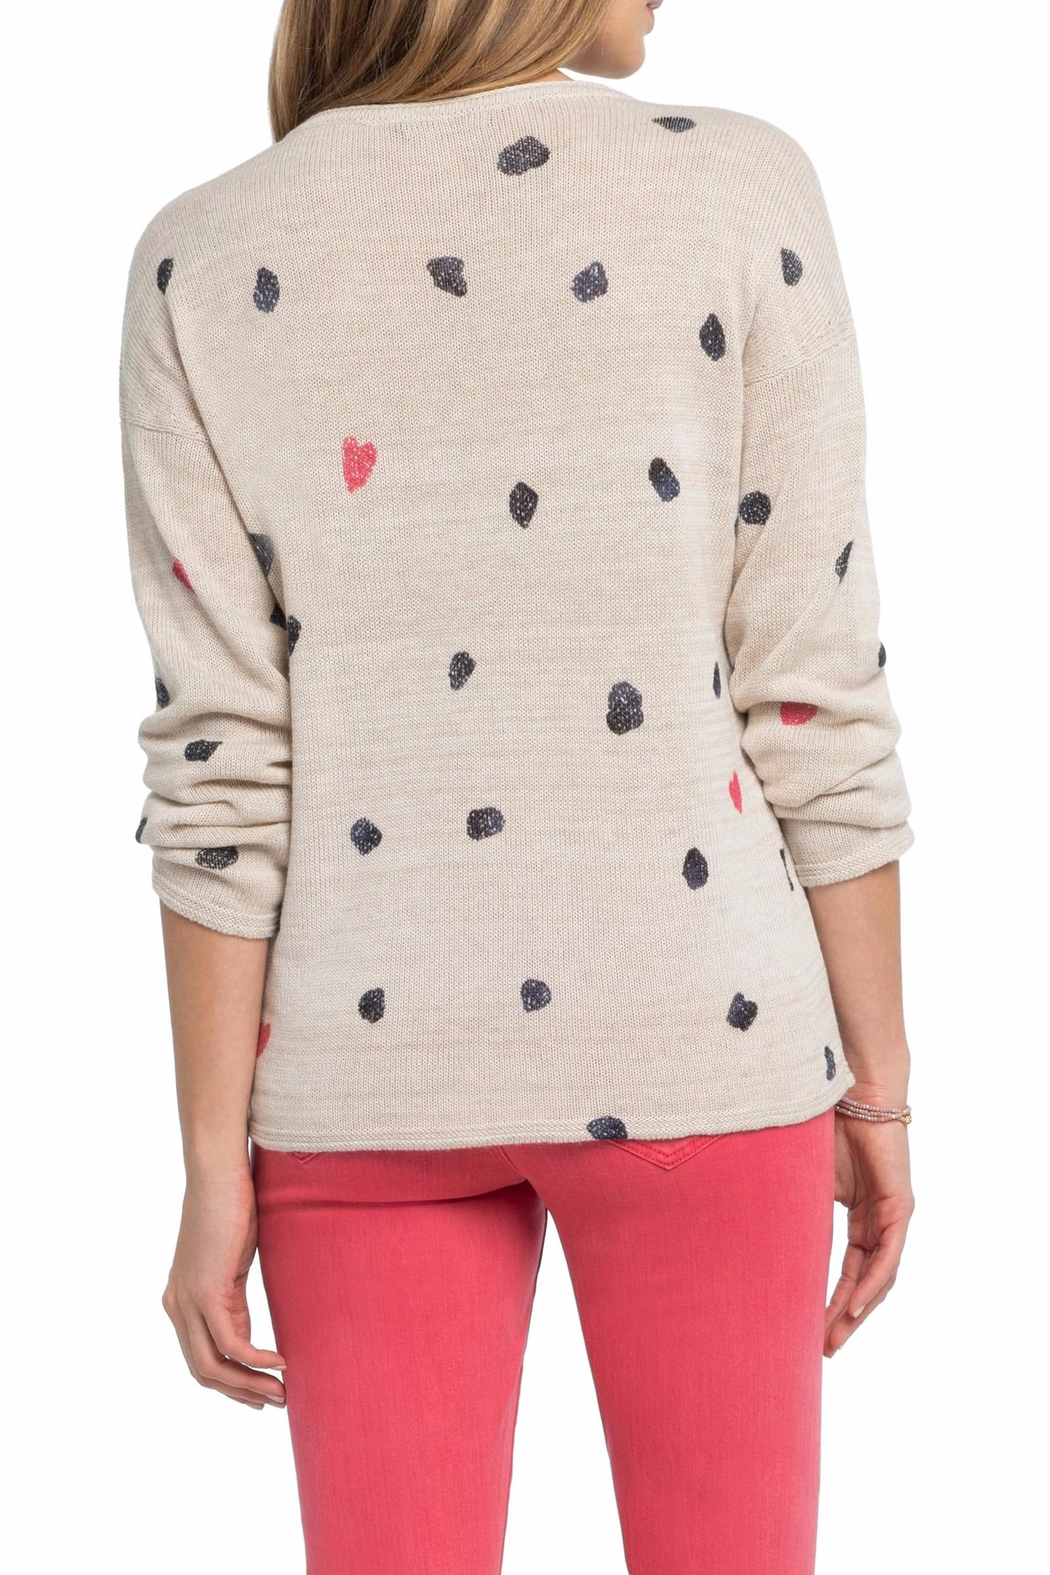 Nic + Zoe Sweetheart Dot Sweater - Side Cropped Image